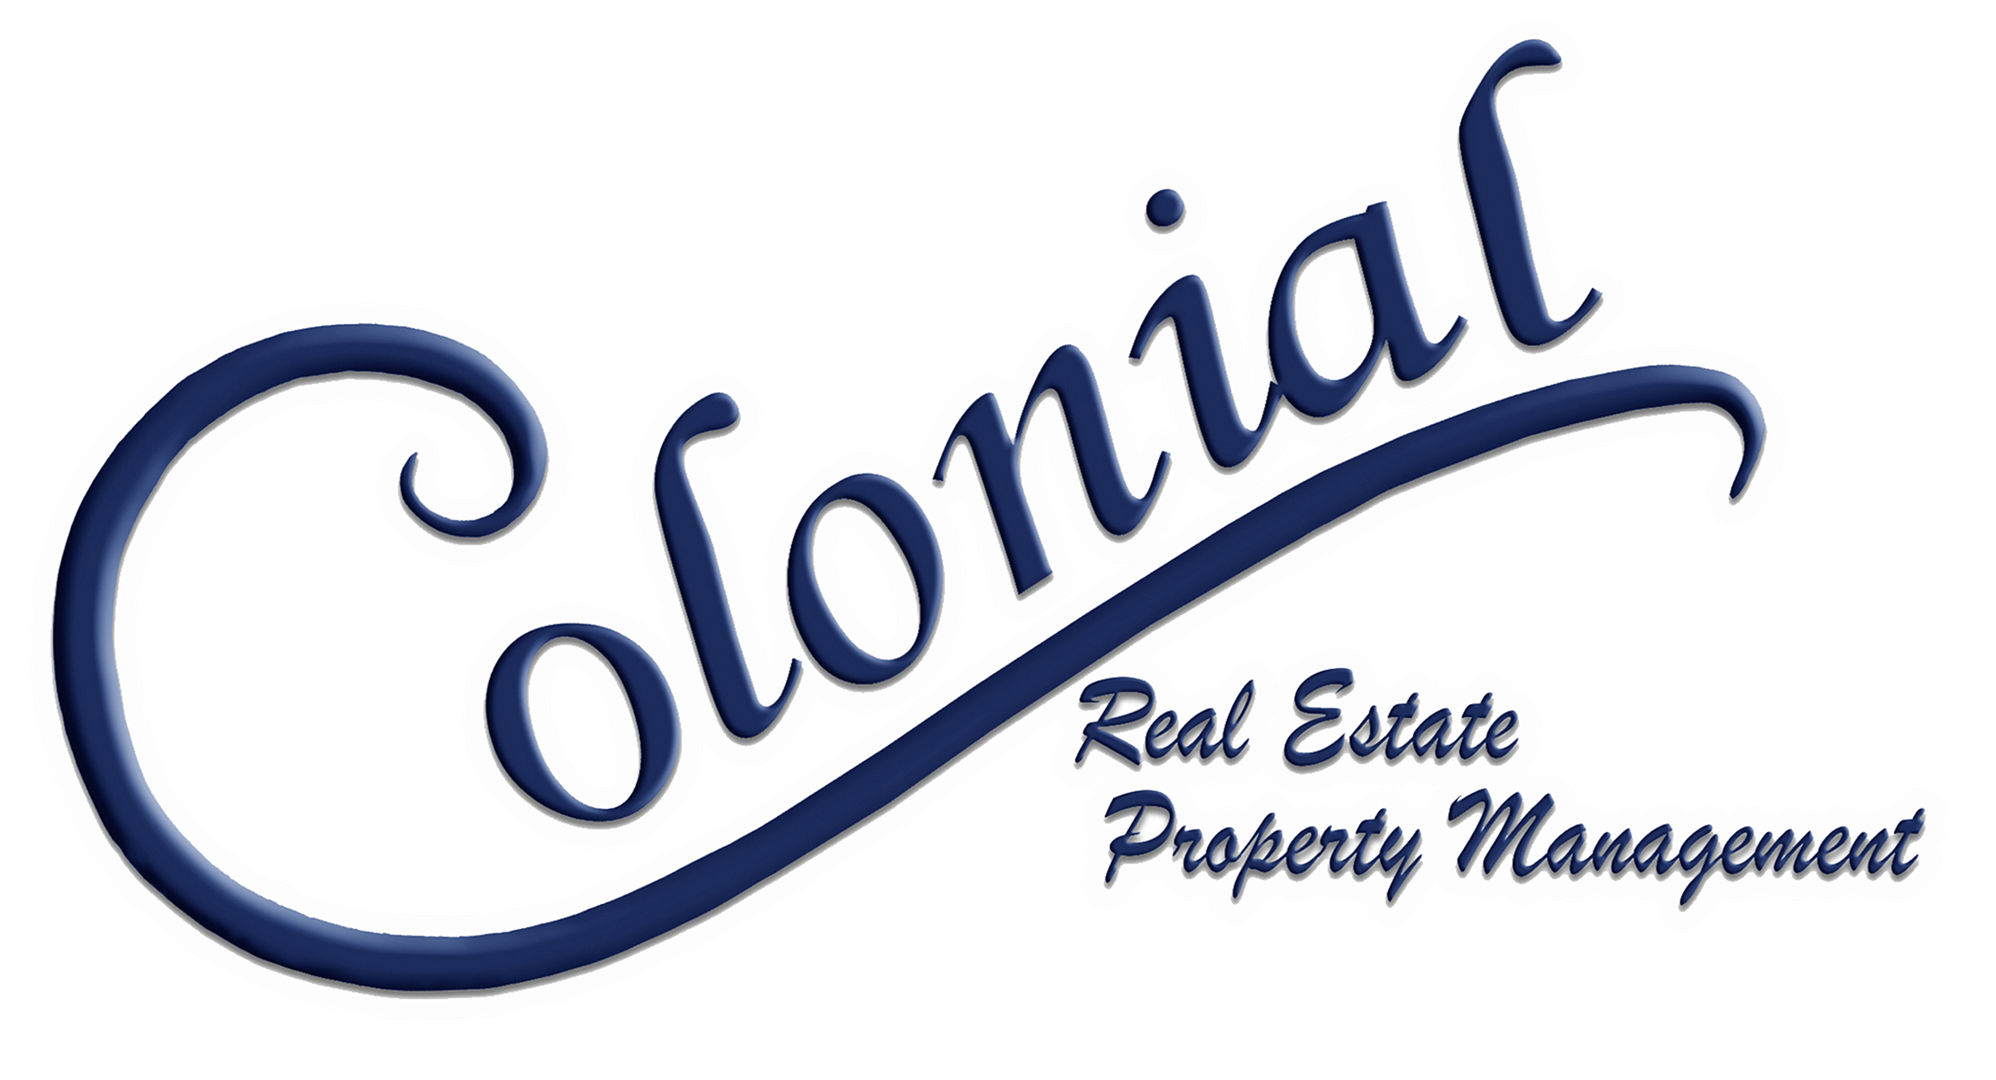 Colonial Real Estate Property Management